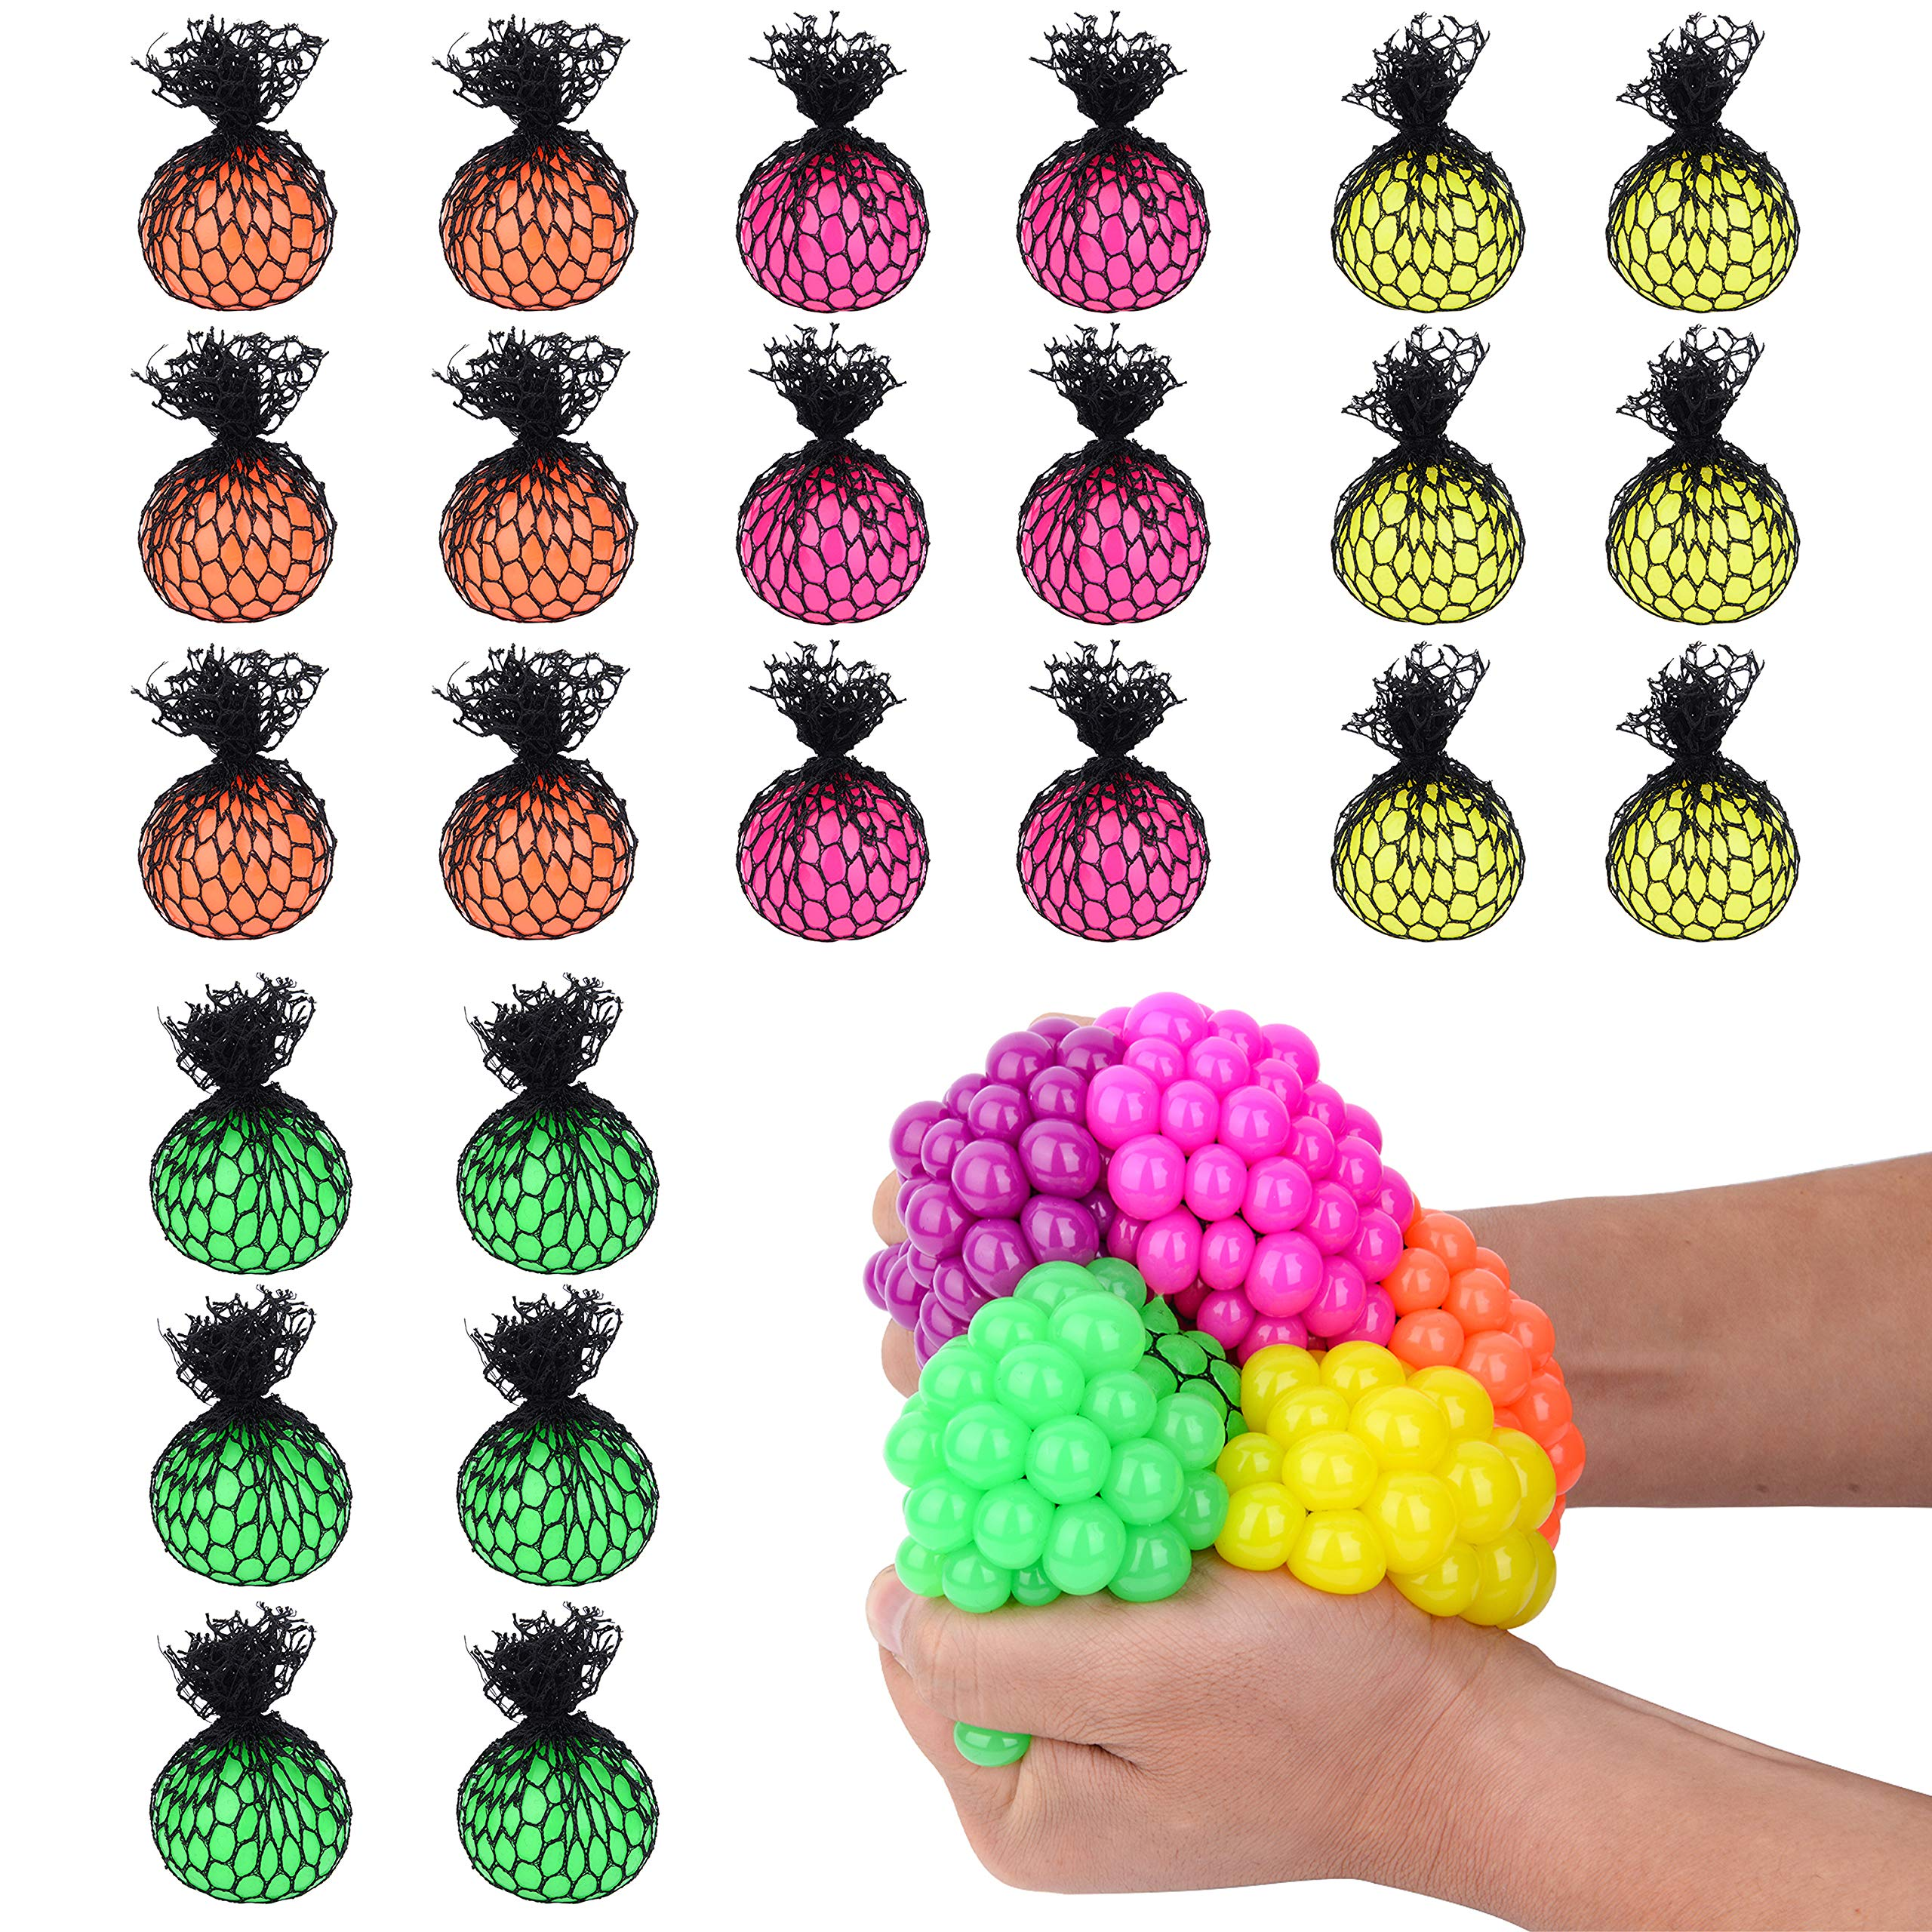 Totem World 24 Colorful Sewn Mesh Stress Balls - 2.4'' Squishy Fidget Toy Perfect for Kids and Adults Materials for Lasting Use - Squeeze Balls for Anxiety and Concentration - Great Party Favors